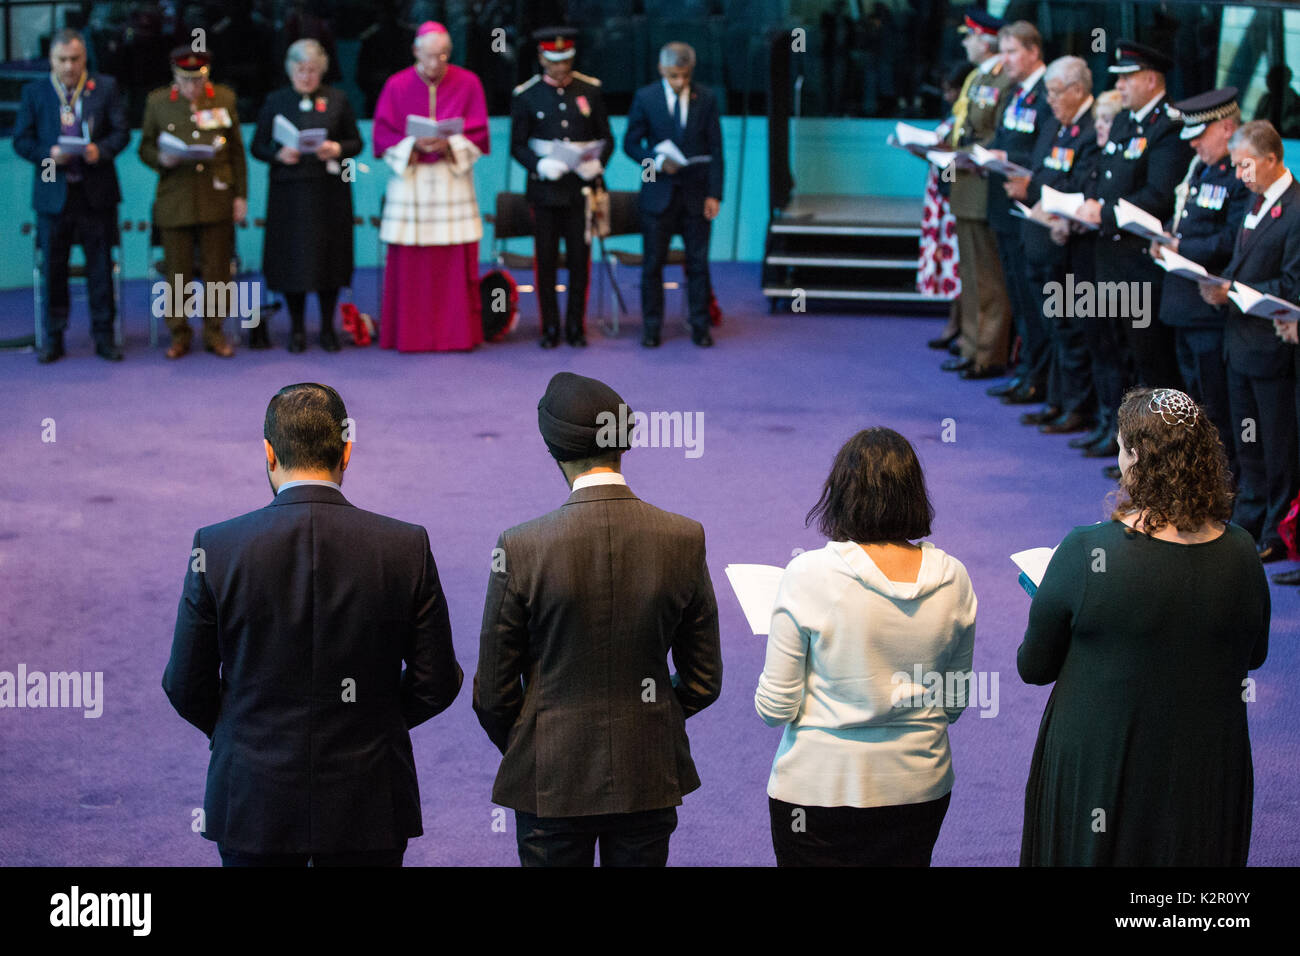 London, UK. 10th November, 2017. Harun Khan (Muslim Council of Britain), Jasvir Singh OBE (City Sikhs), Dr Deesha Chadha (Hindu Forum of Britain) and Rabbi Debbie Young Somers (Movement for Reform Judaism) attend the Annual Service of Remembrance at City Hall with Mayor of London Sadiq Khan, Jennette Arnold OBE AM, Chair of the London Assembly, Members of Parliament, London Assembly Members, Greater London Authority staff, representatives from London Government and public service organisations, and members of the Armed Forces, to commemorate those who served and lost their lives in the two wor - Stock Image